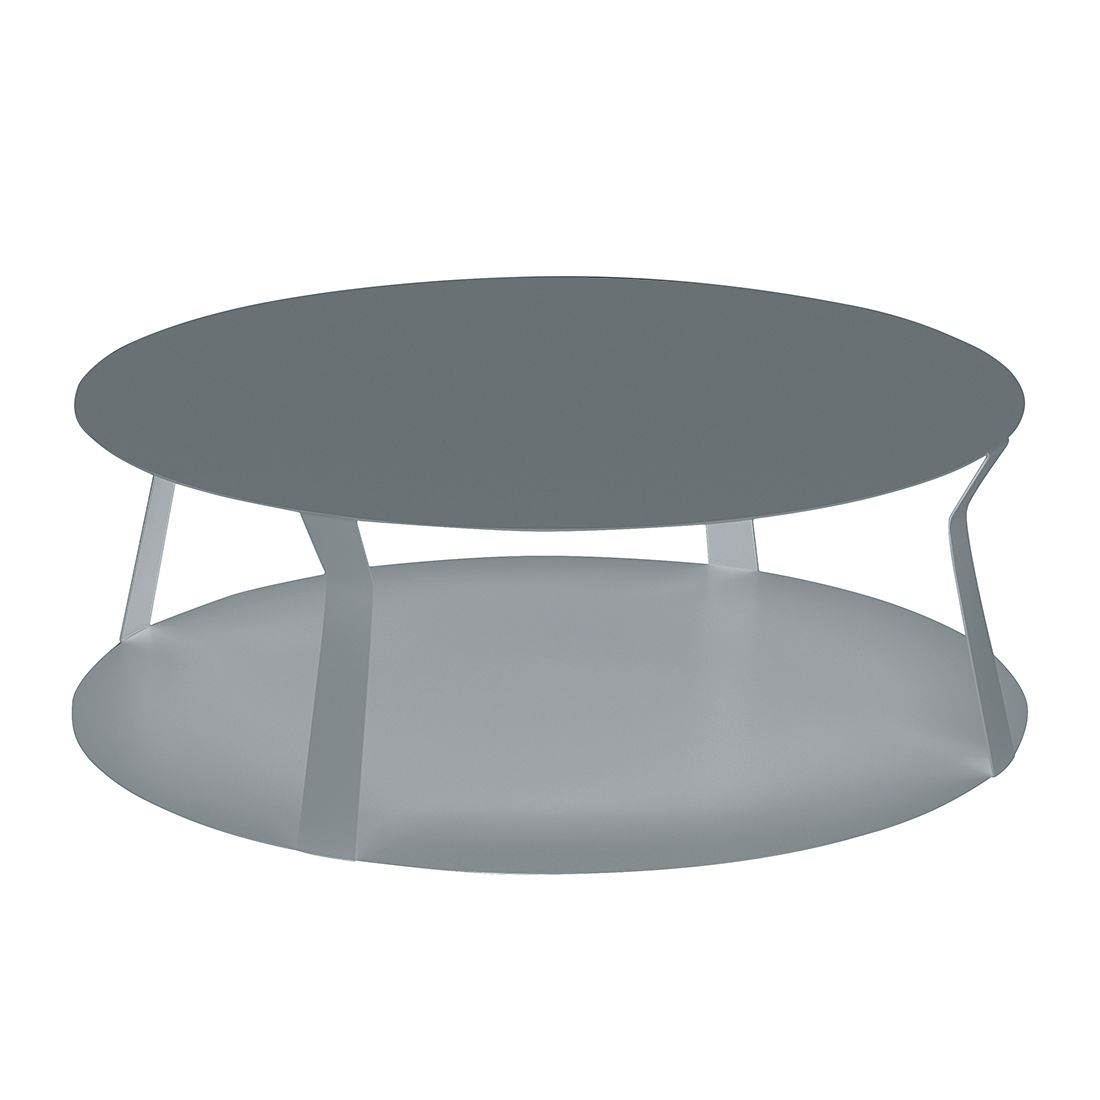 Table basse Freeline II - Métal - Gris argenté, Memedesign